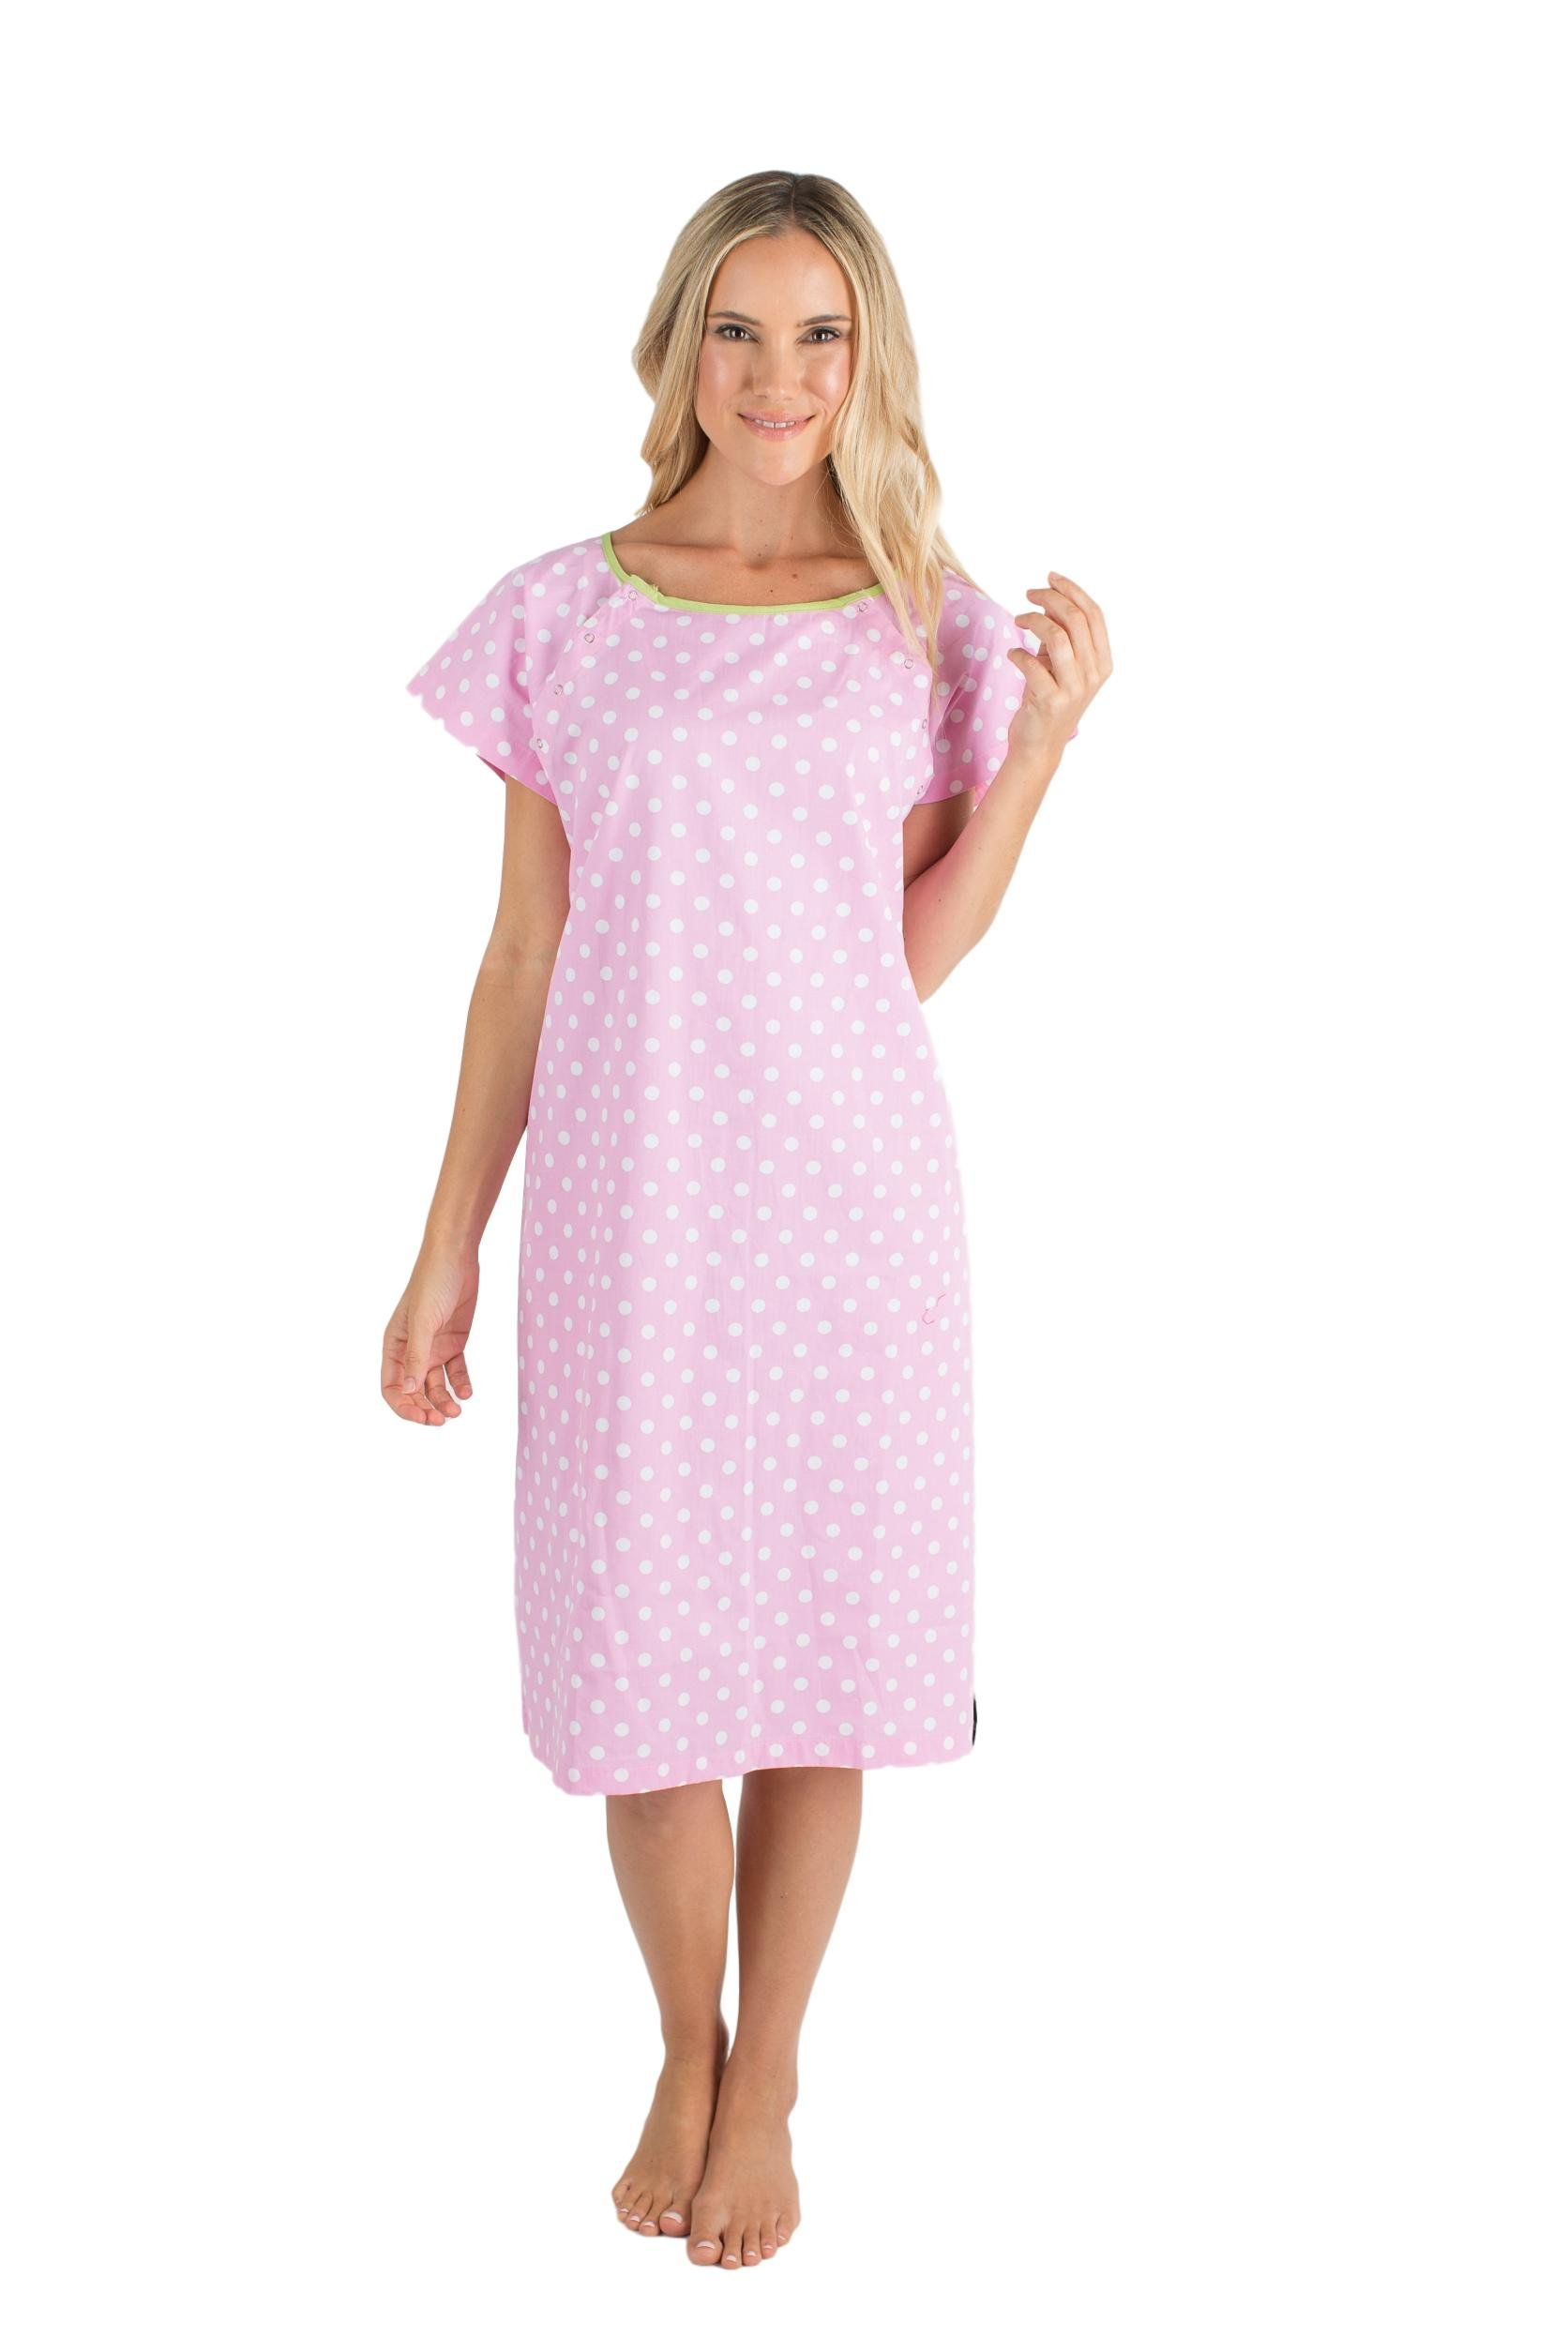 Gownies Hospital Patient Gown, Designer (S/M Size 0-10, Molly)